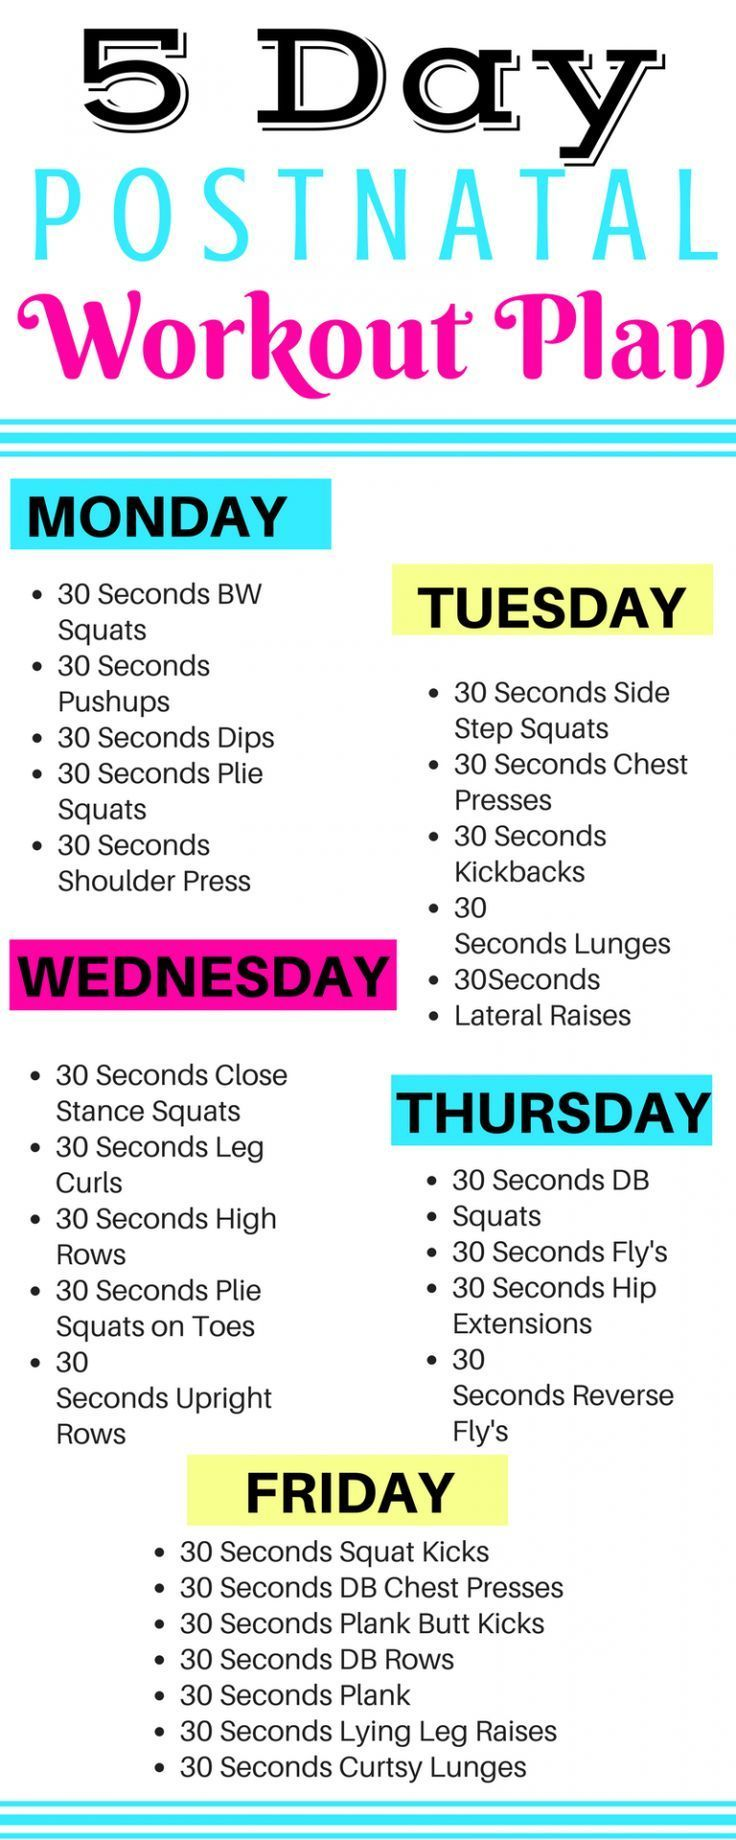 5 Day Postnatal Workout Plan - Michelle Marie Fit